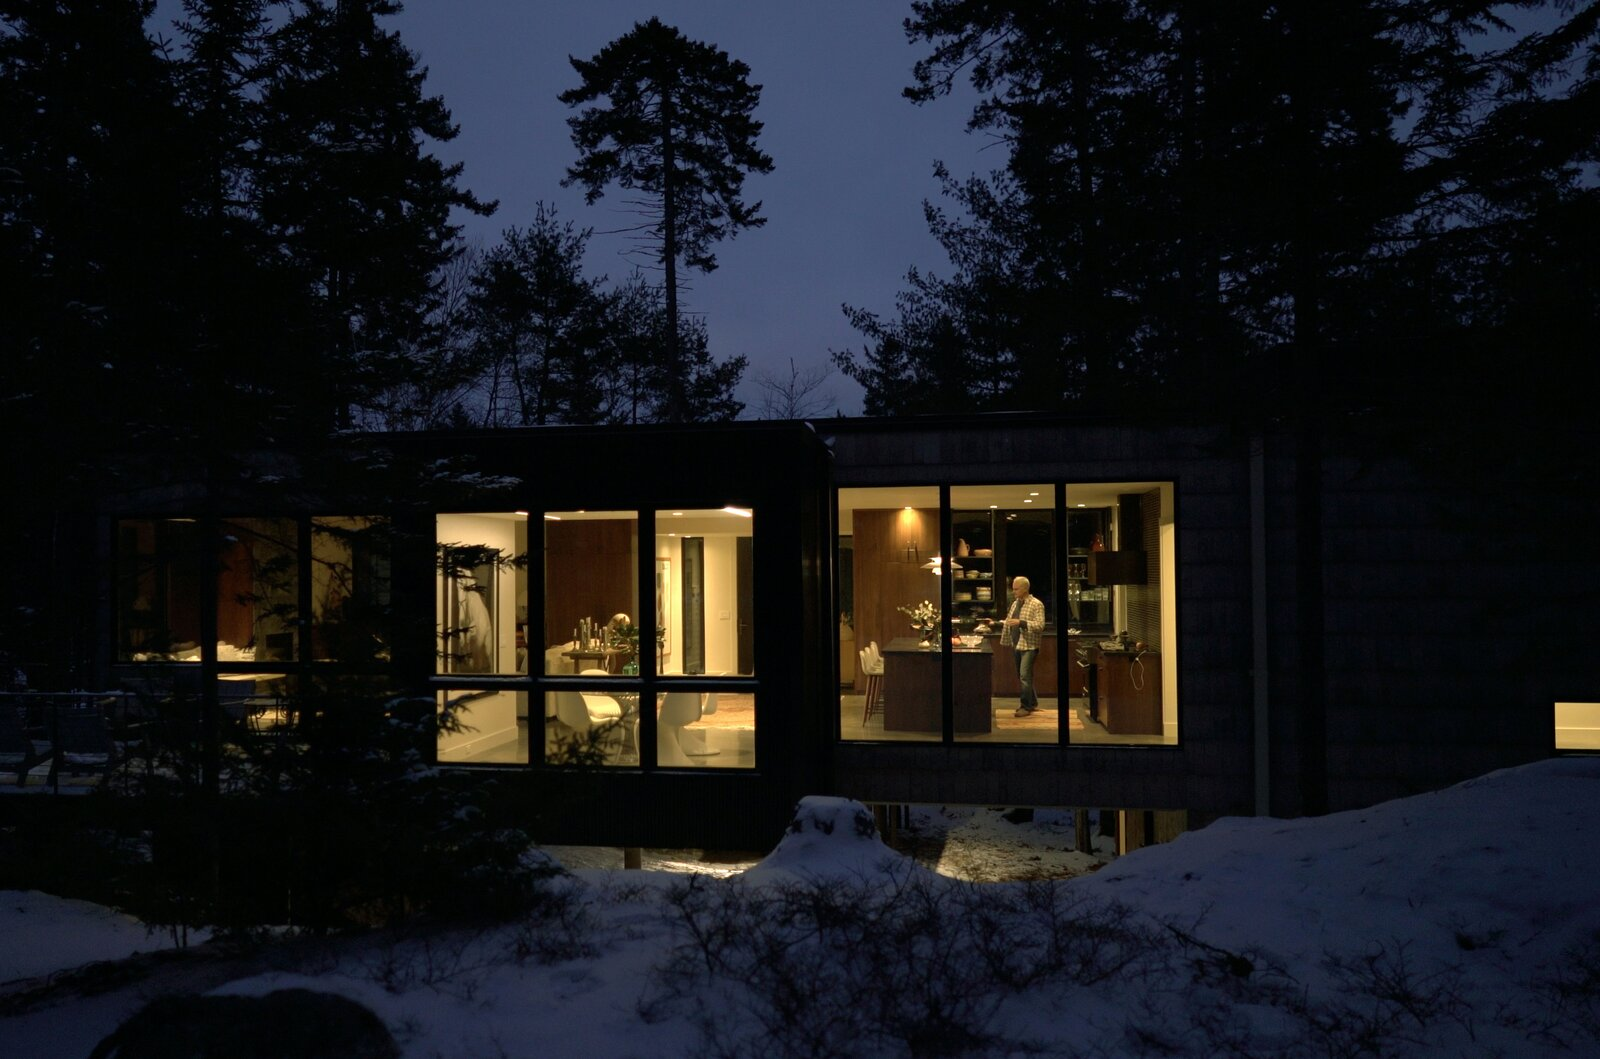 Windows and Picture Window Type A night, the expansive windows and doors allow a warm light to emanate into the isolated forest.  Photo 12 of 12 in A Winding Boardwalk Grounds This Hovering Cabin Along the Edge of a Remote Pond